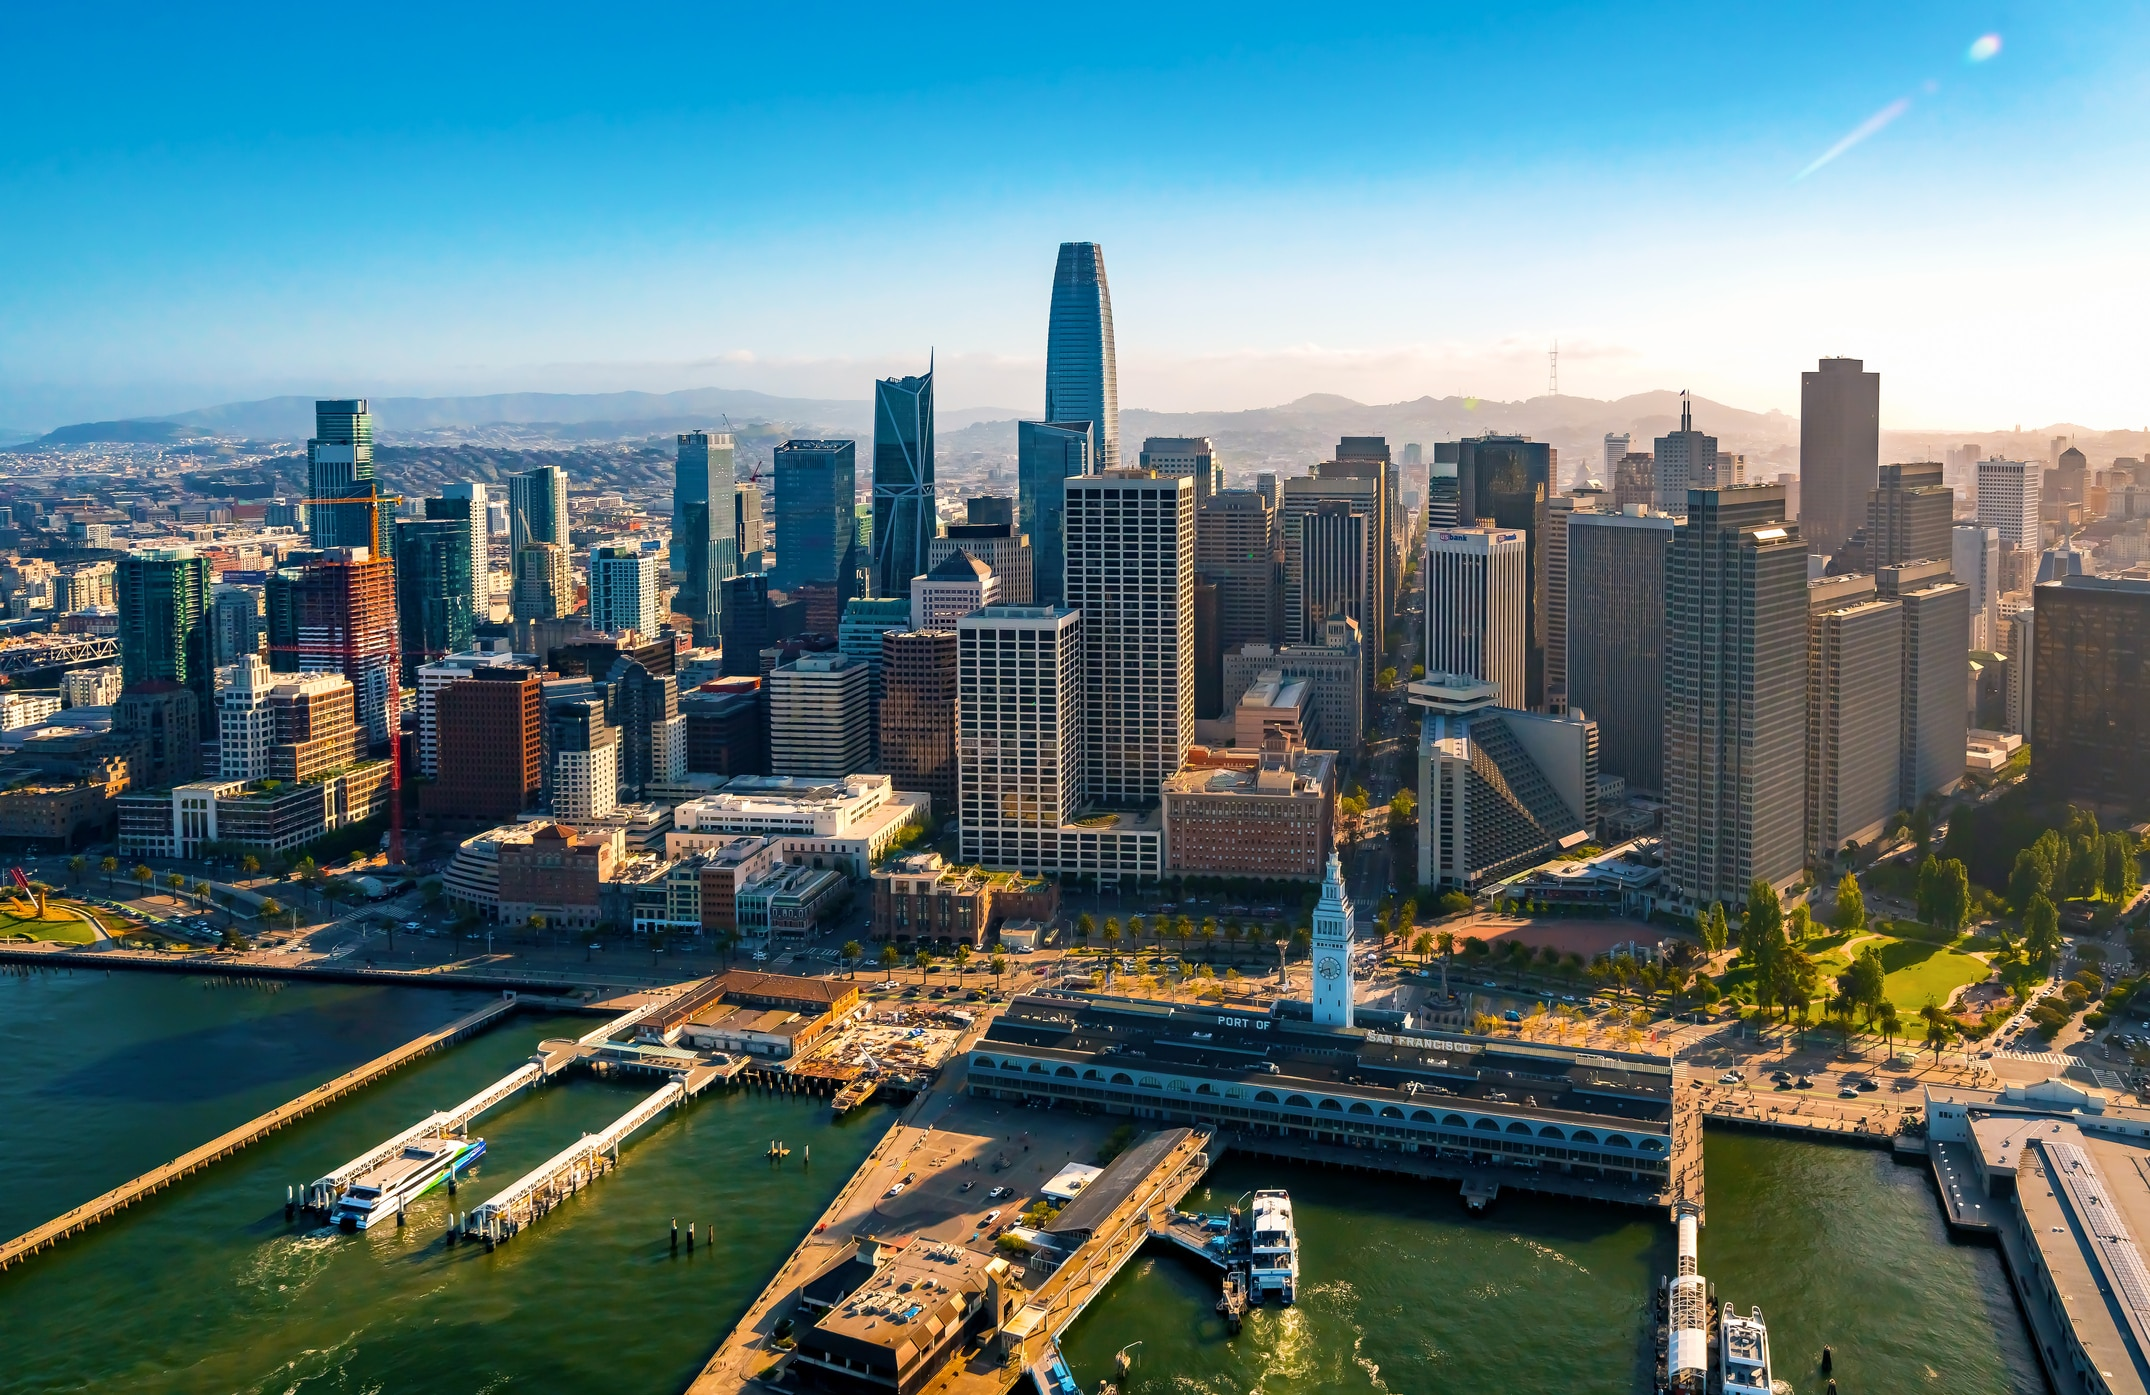 Downtown San Francisco Stock Photo - Download Image Now